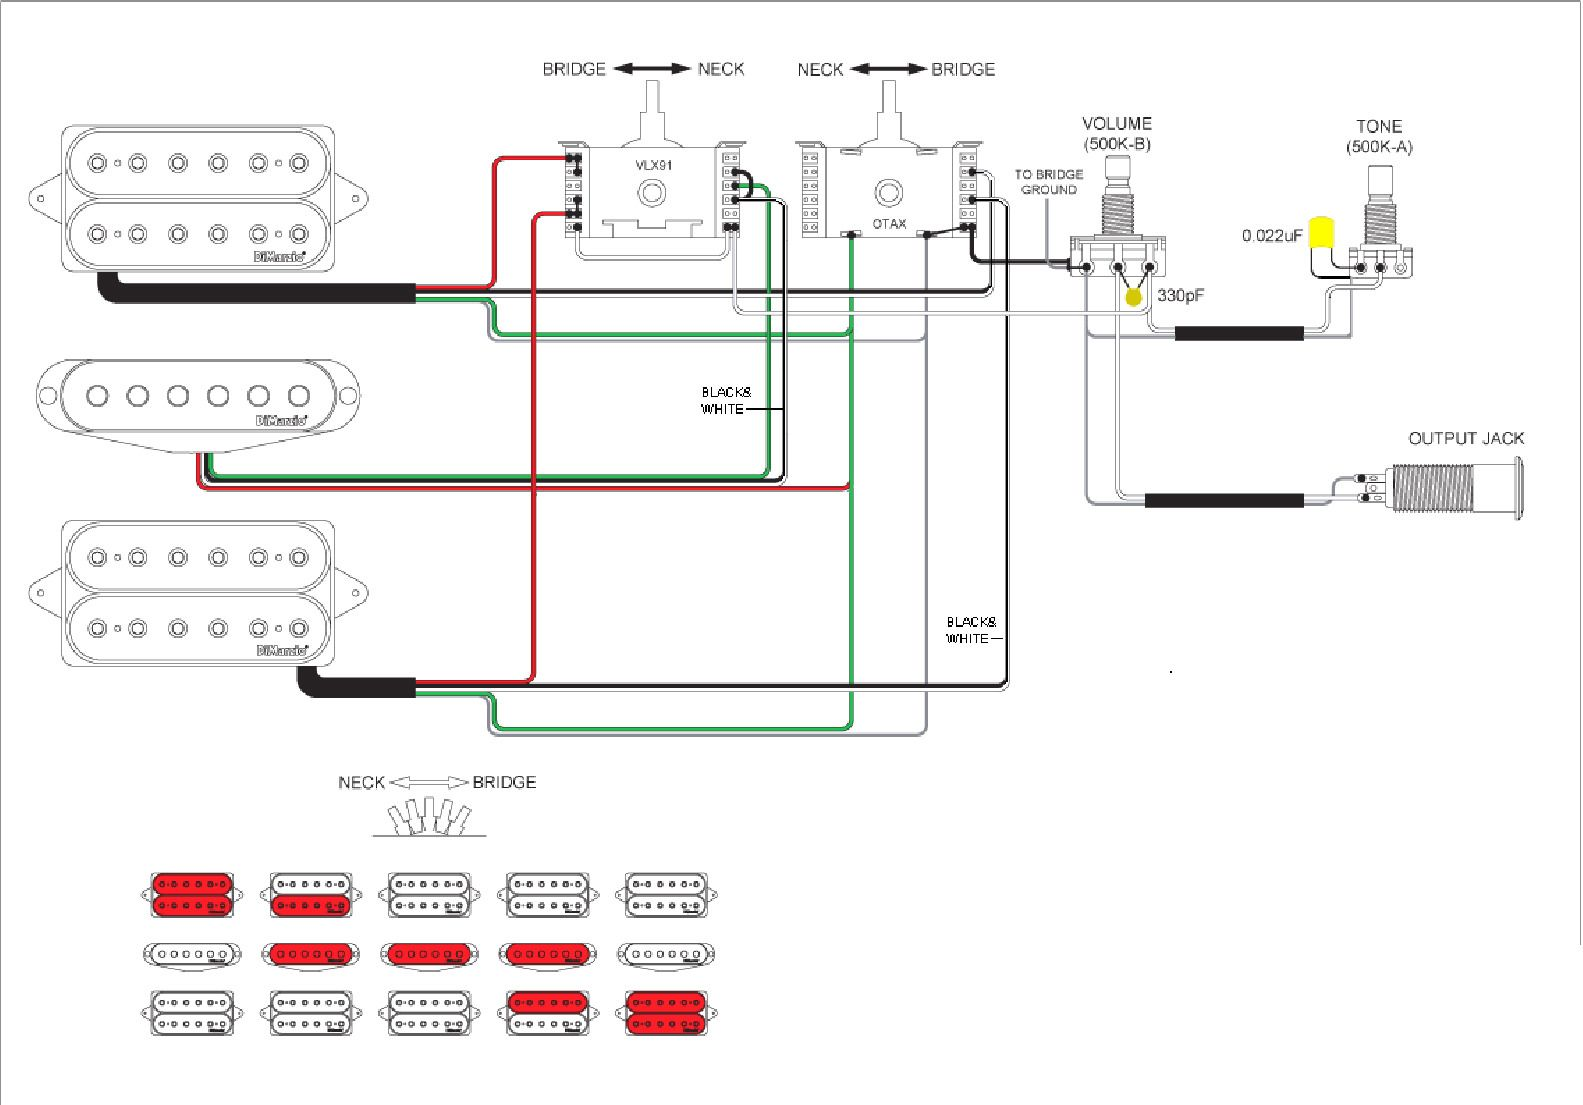 Ibanez Rg Wiring Diagram 5 Way With Jem And Webtor Me ... on samick 5-way switch diagram, esp 5-way switch diagram, ssh 5-way switch diagram, stratocaster 5-way switch diagram, 5-way light switch diagram, 5-way switch pin diagram, easy 5-way switch diagram, fender 5-way switch diagram, schaller 5-way switch diagram,